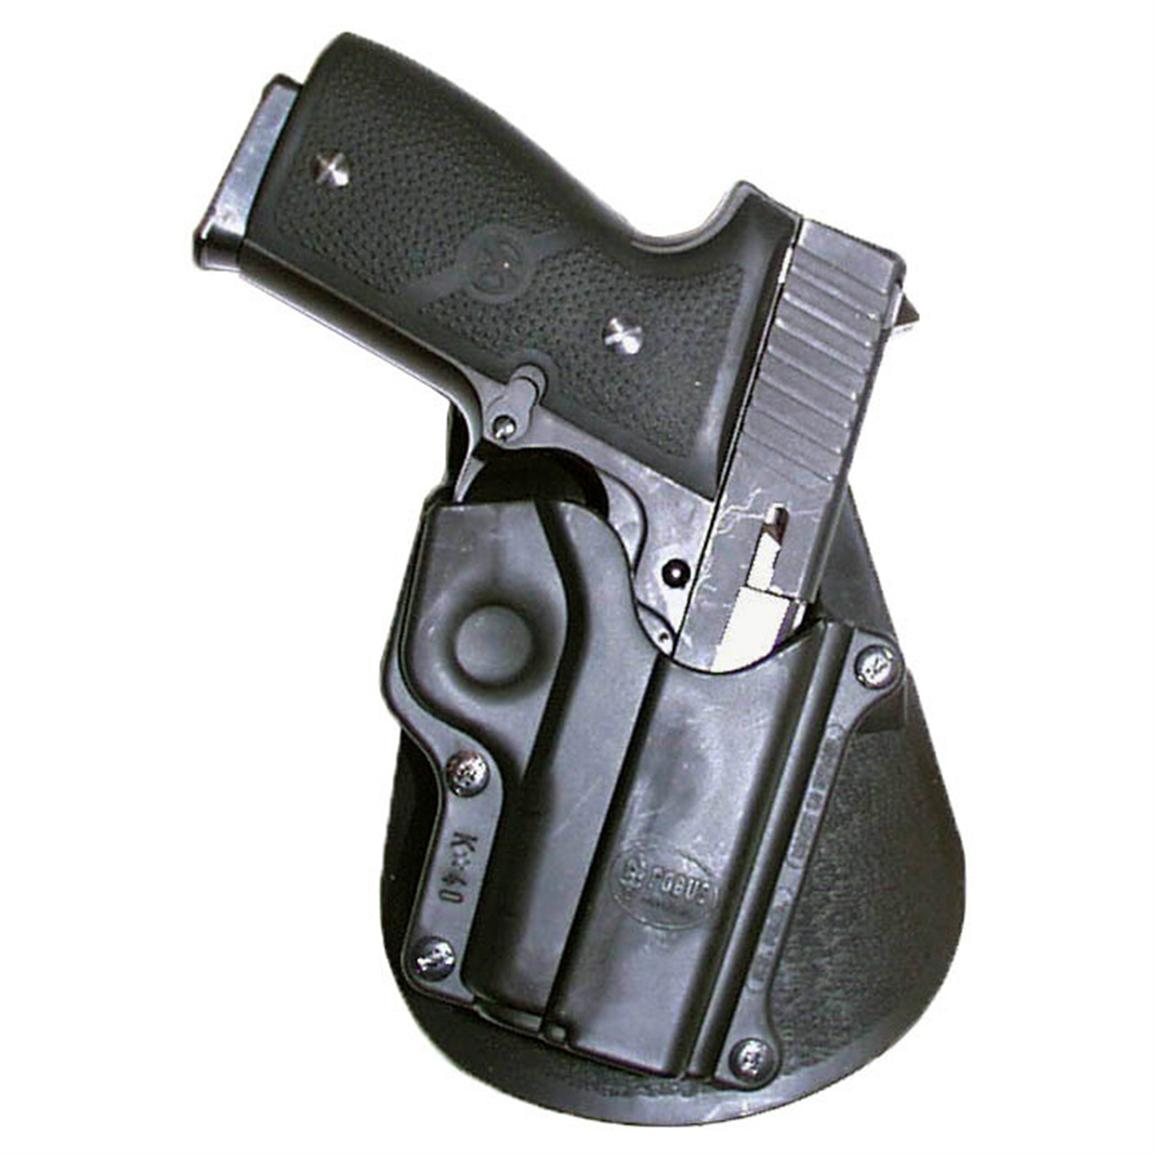 Fobus Kahr K40 Metal/PM9/KO/T40/MK40  Holster with Double Mag Pouch